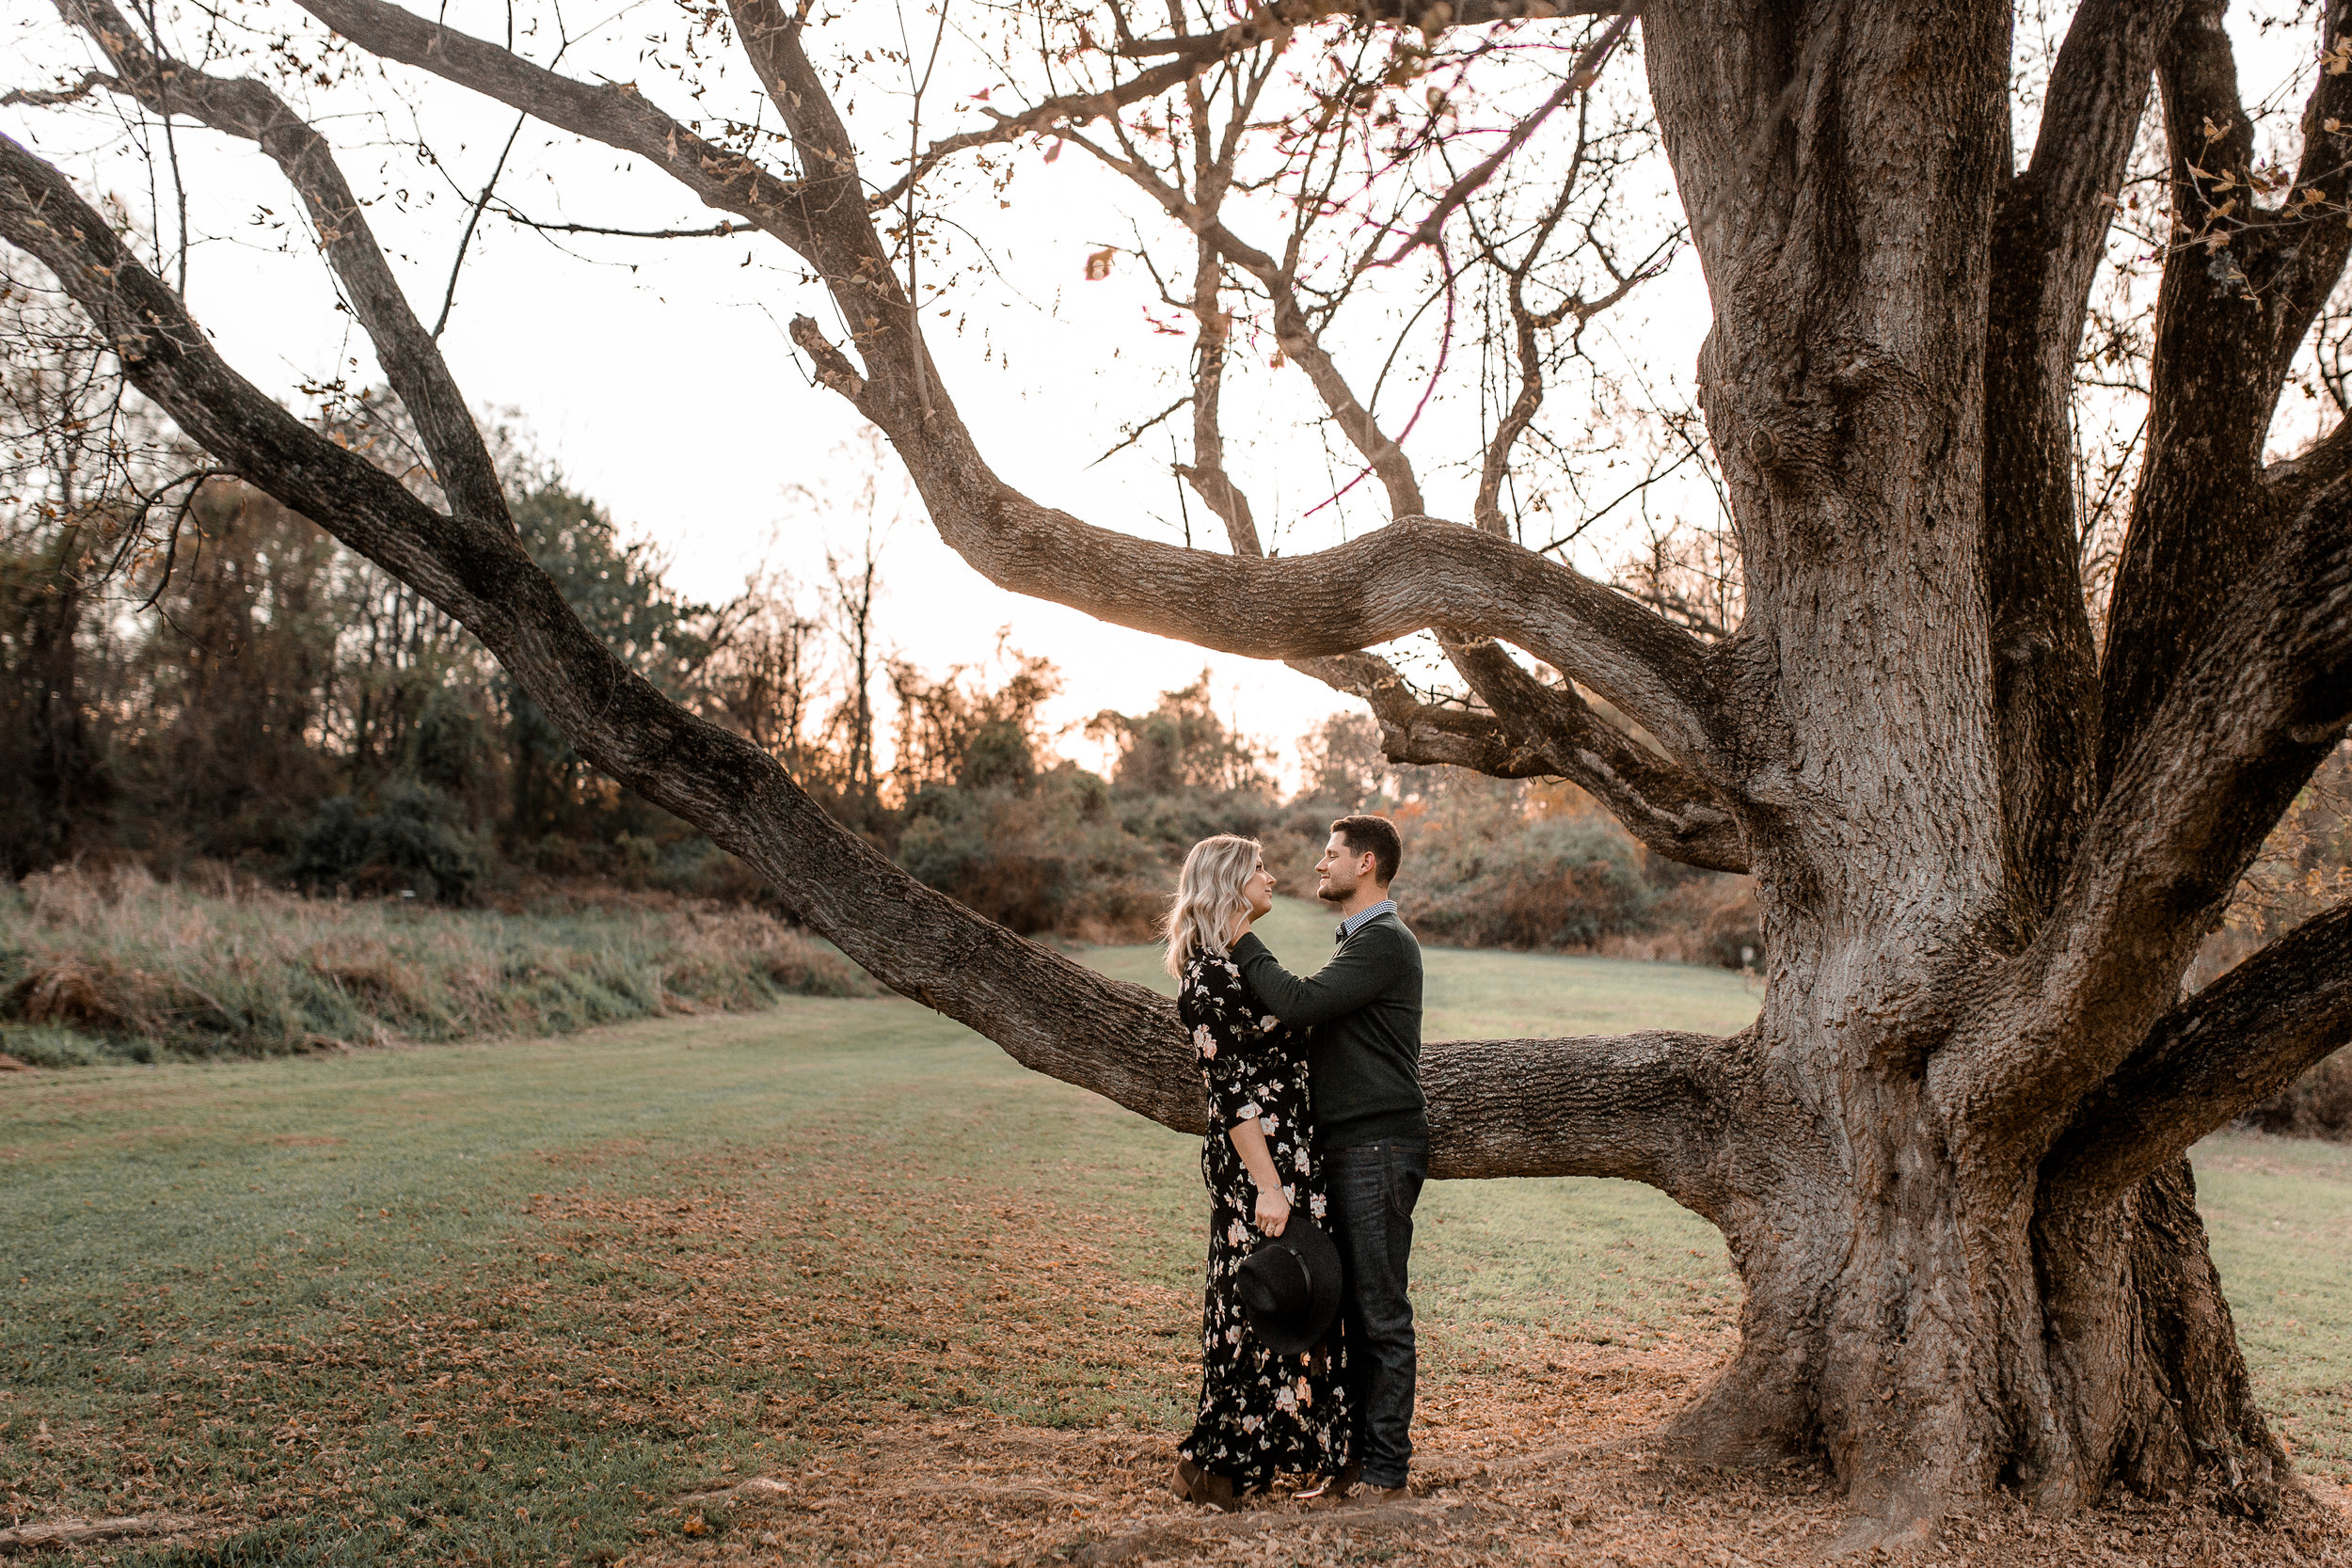 nicole-daacke-photography-carefree-bohemian-lancaster-pa-pennsylvania-engagement-photos-engagement-session-golden-sunset-adventure-session-in-lancaster-pa-lancaster-pa-outdoor-wedding-photographer-28.jpg